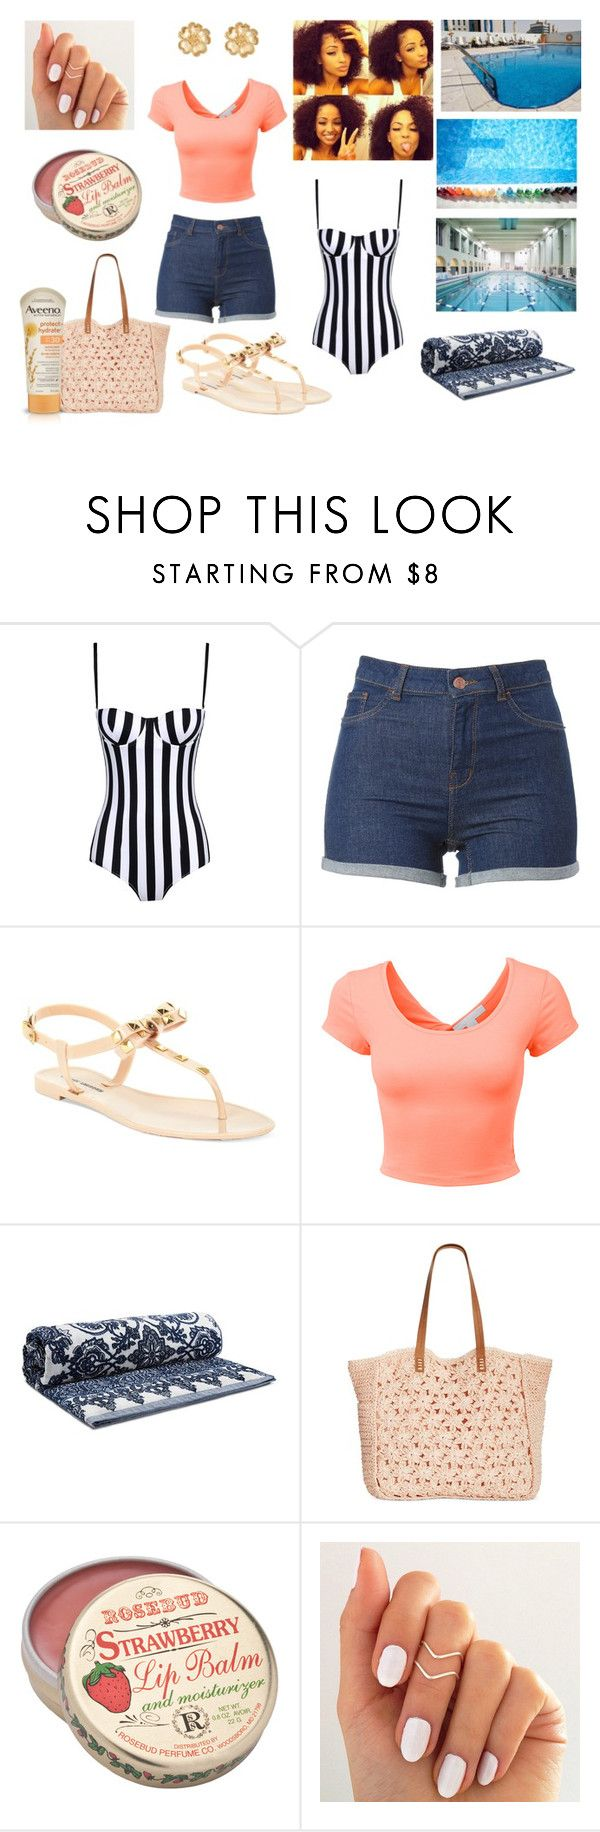 """""""Pool Outfit =)"""" by nubiansuprise ❤ liked on Polyvore featuring Dolce&Gabbana, Chinese Laundry, LE3NO, Tory Burch, Straw Studios, Aveeno and Bling Jewelry"""